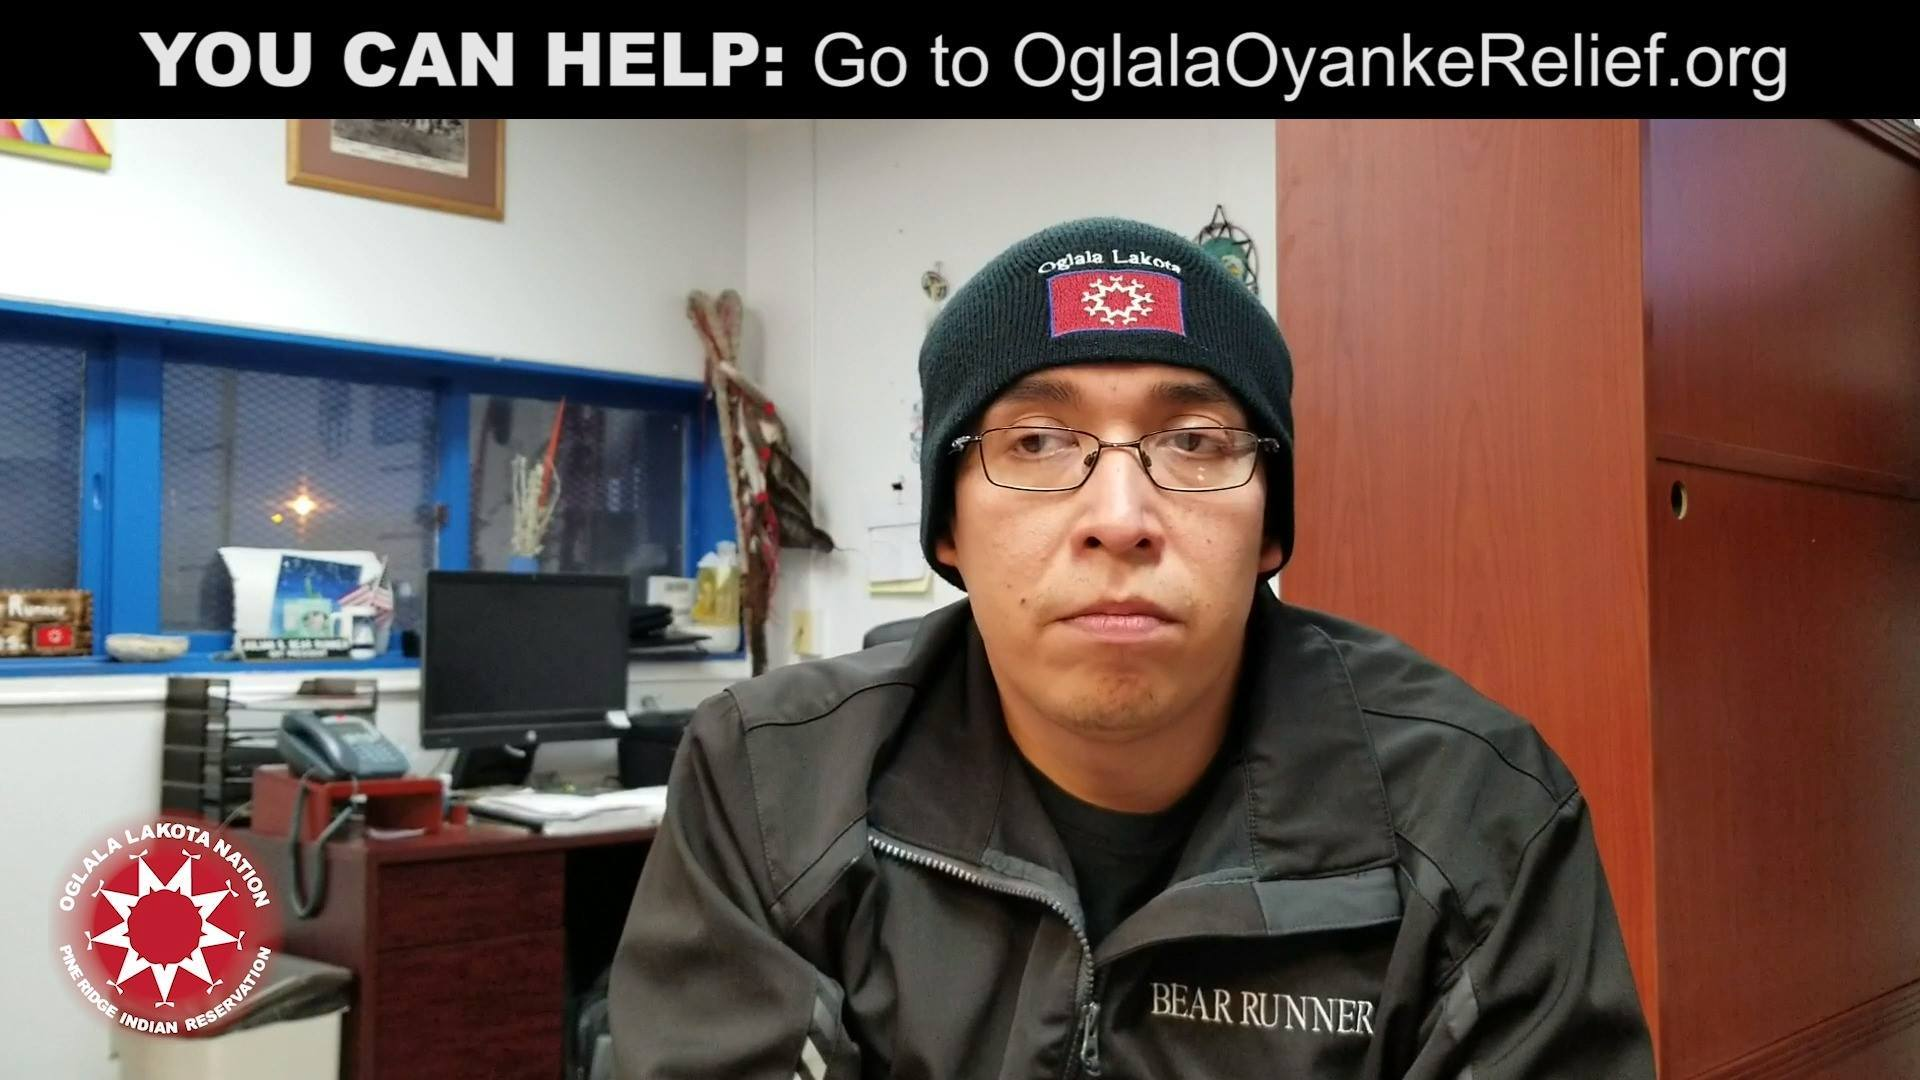 State of Emergency for the Oglala Lakota Nation